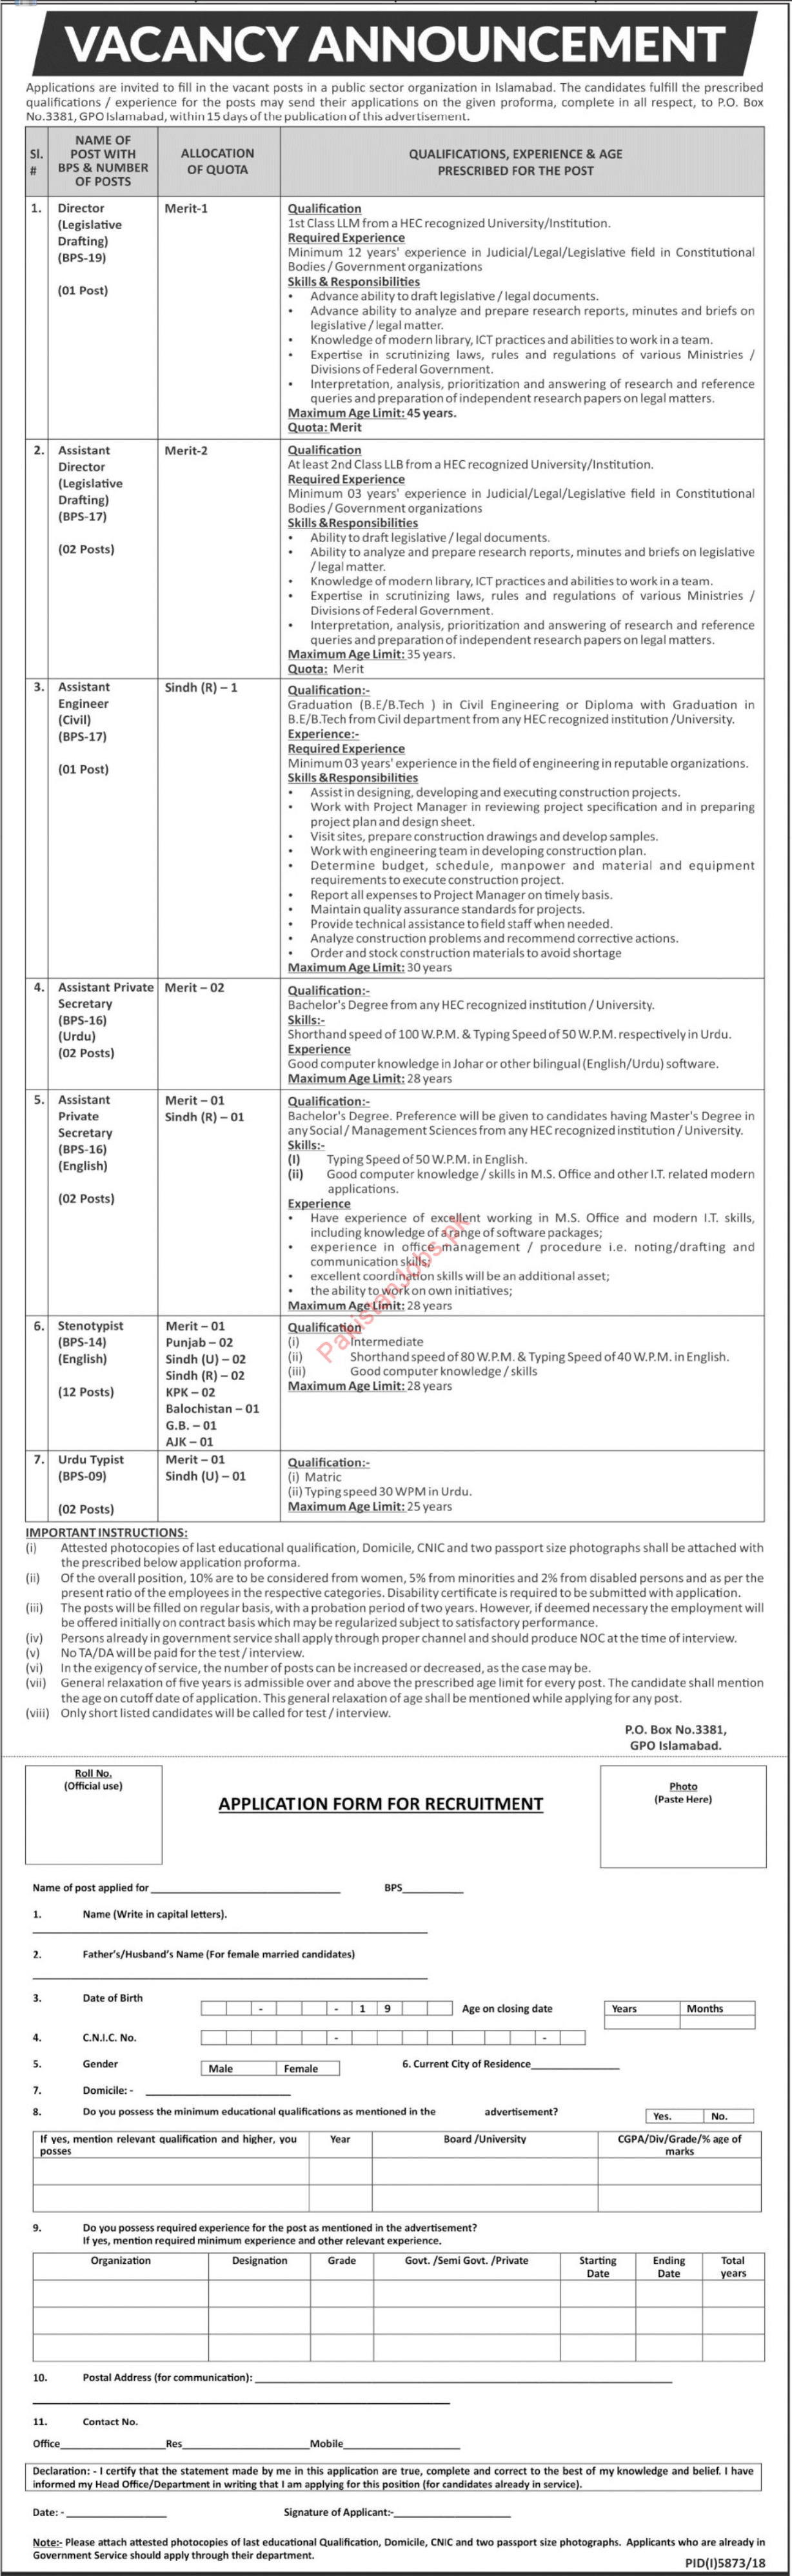 Pakistan Atomic Energy Commission PAEC Jobs 2019 in Islamabad 2019